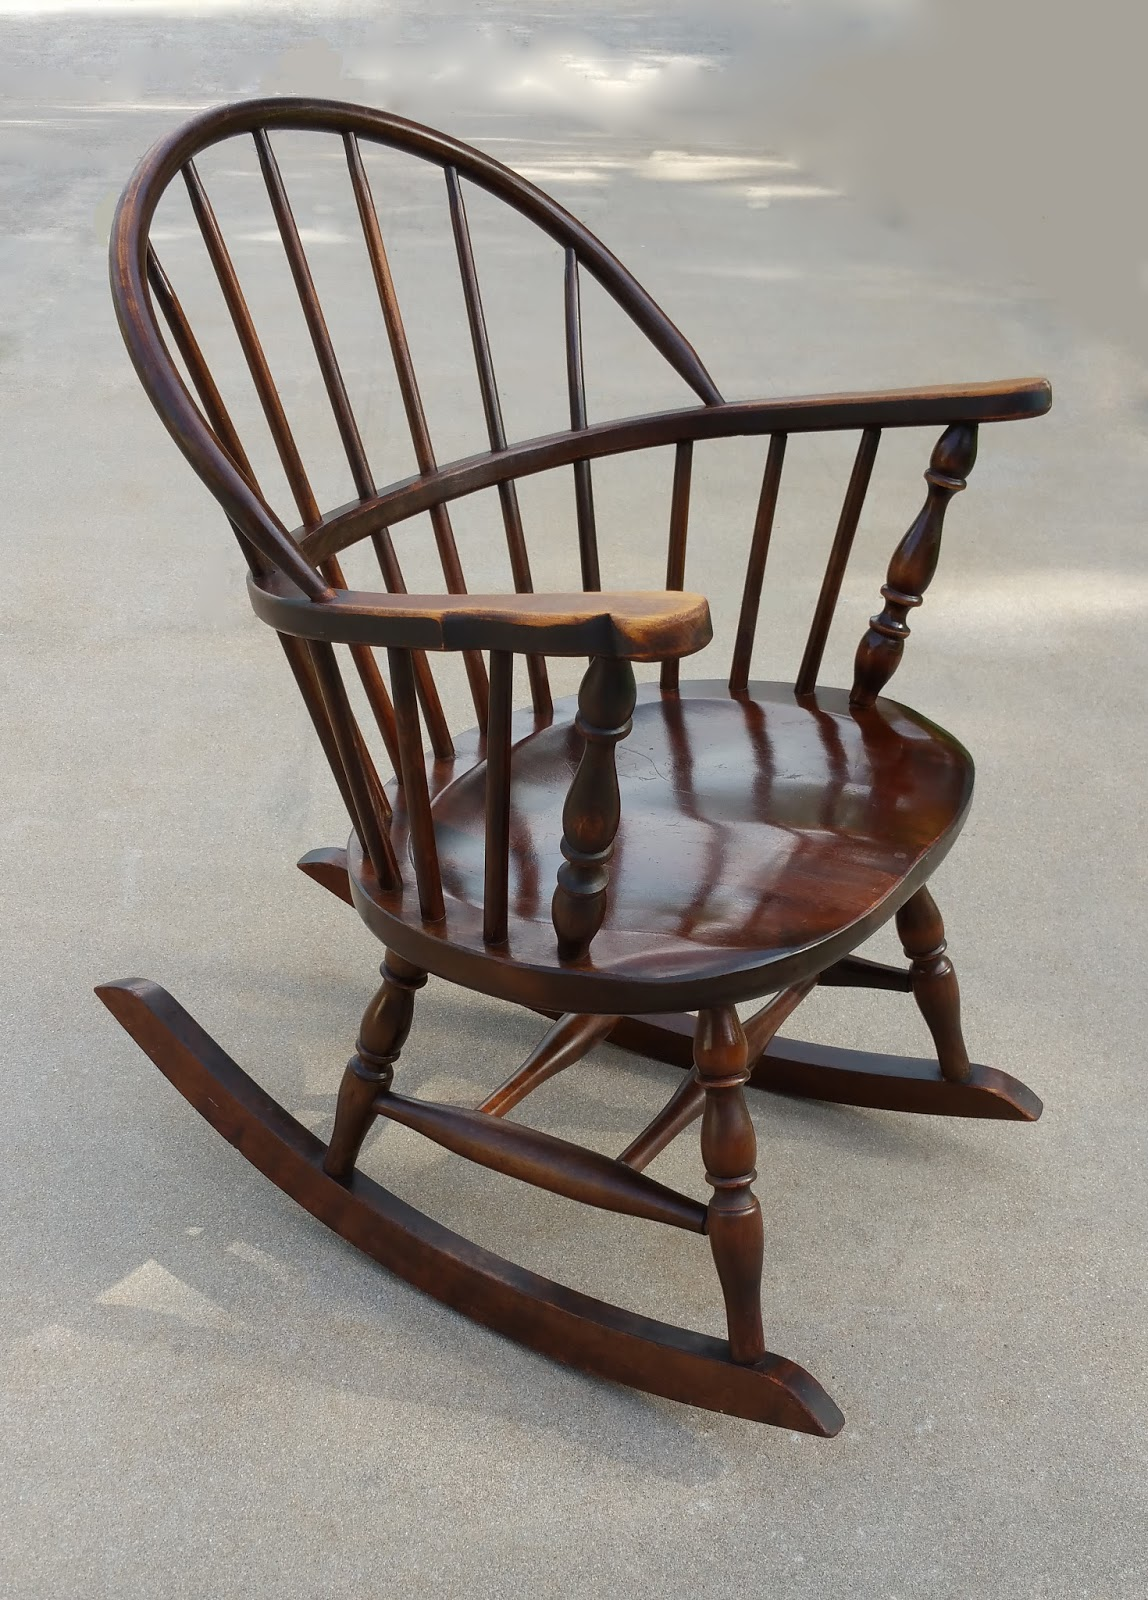 antique windsor rocking chair mendlbarr: Rocking Chairs every home should have at least one! antique windsor rocking chair